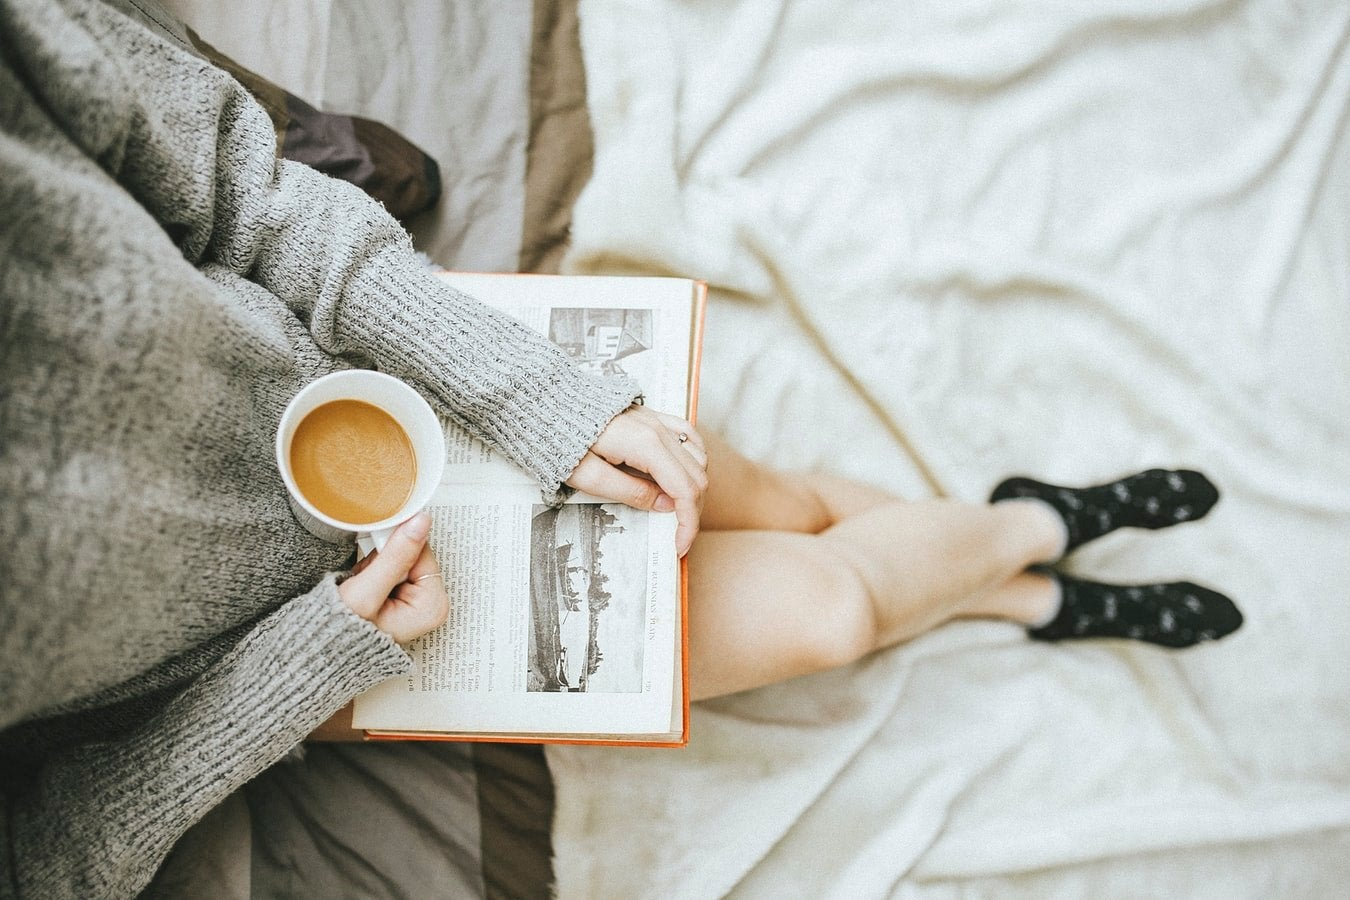 woman holding cup of coffee and reading a book while sitting on bed